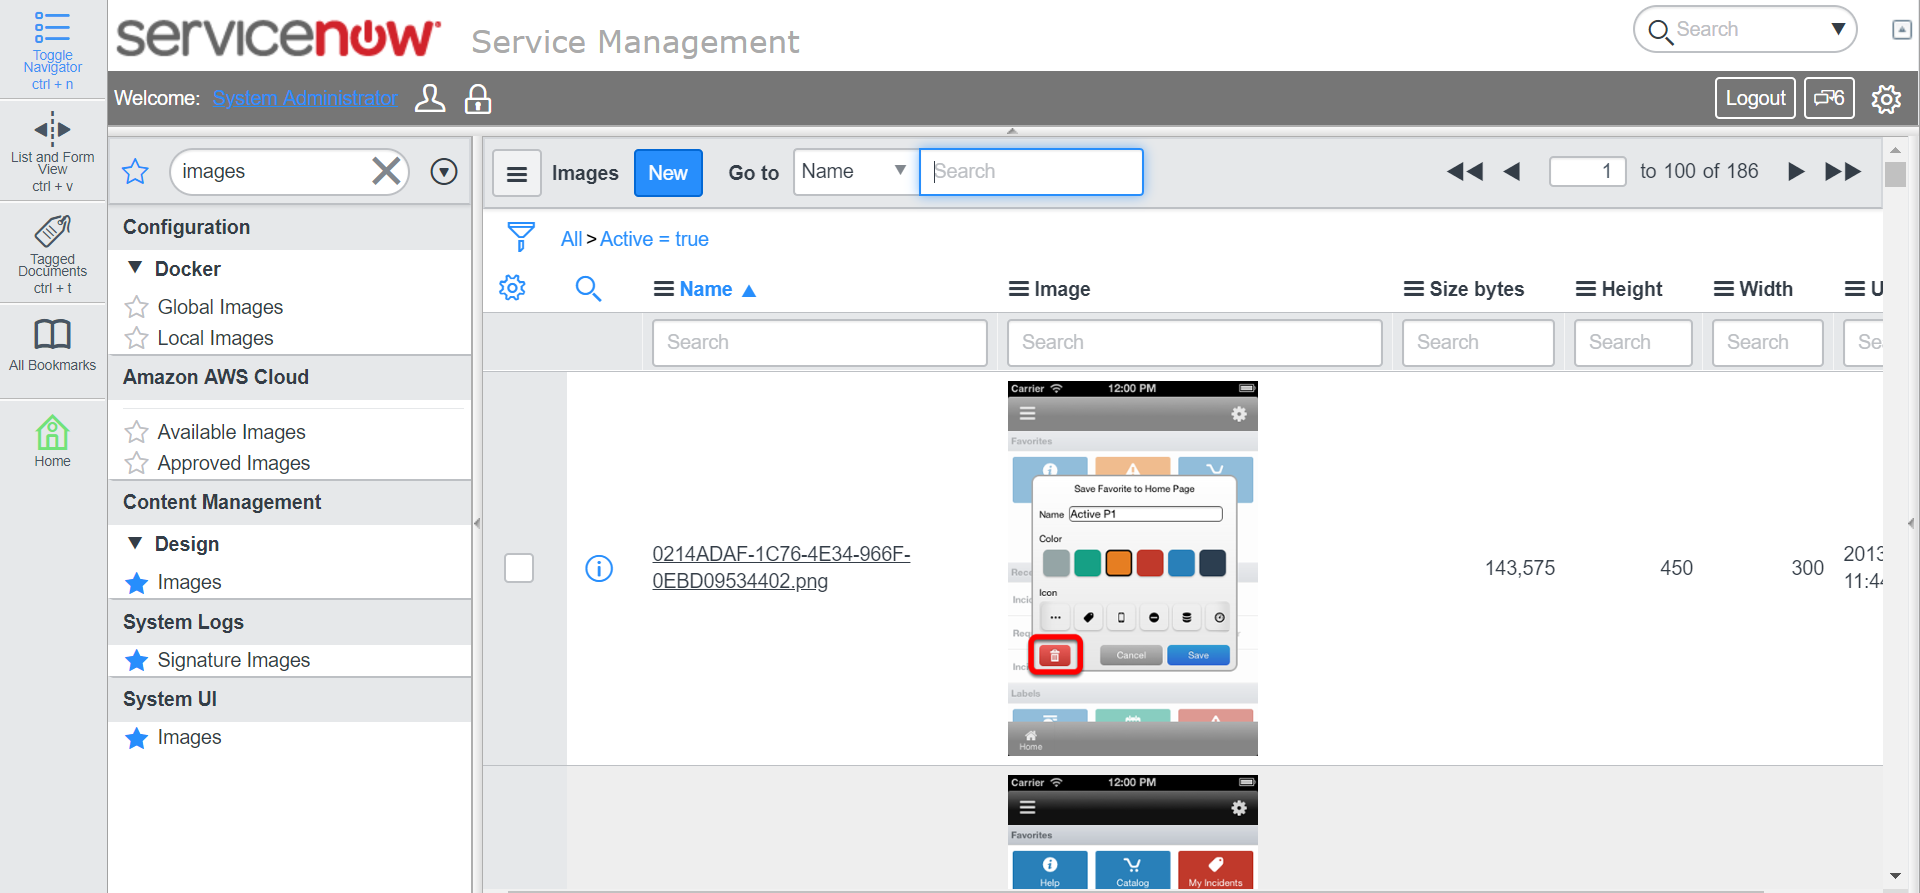 where is images/icon located? - Developer Community - ServiceNow